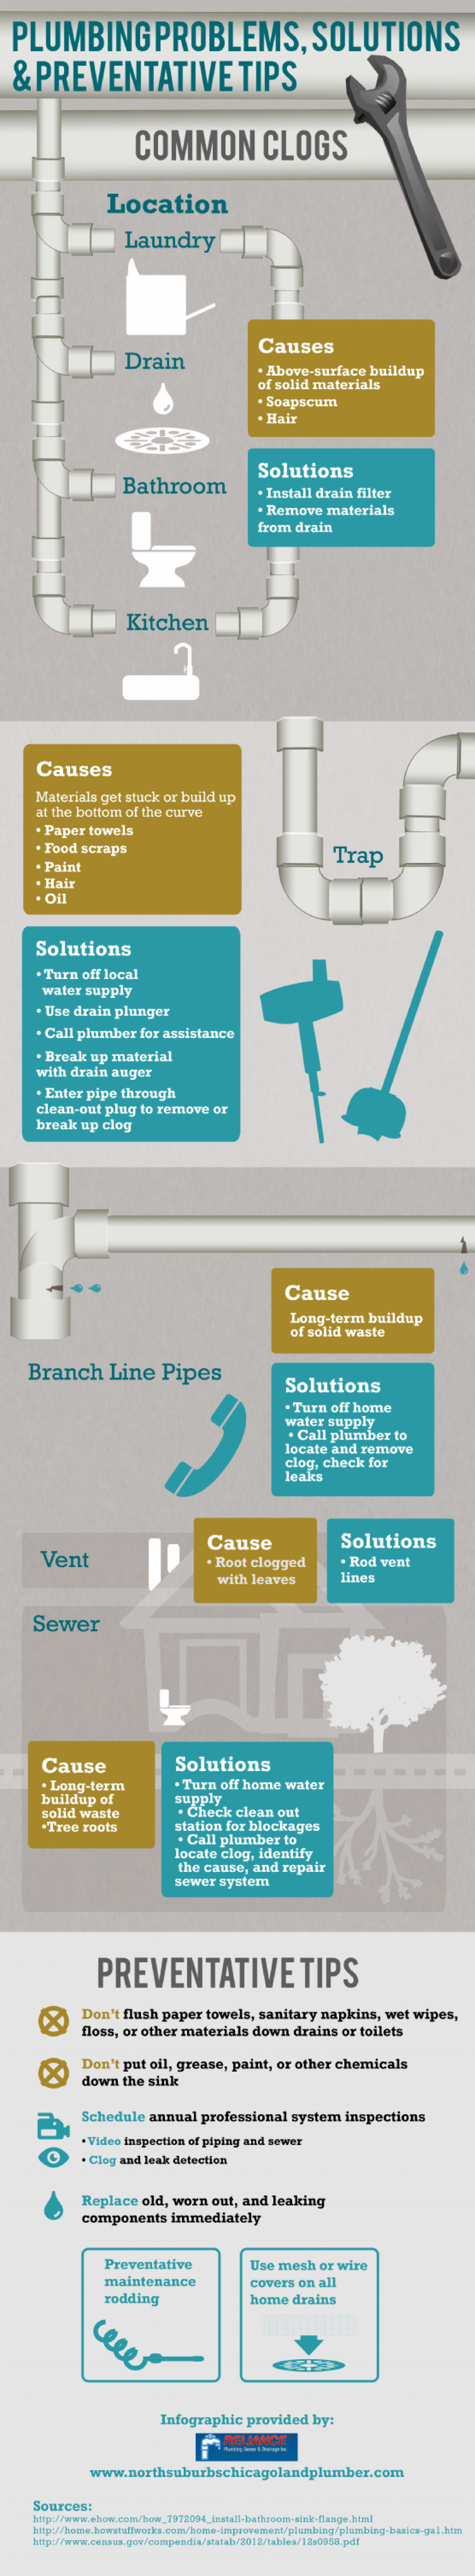 Plumbing Problems, Solutions & Preventative Tips Infographic